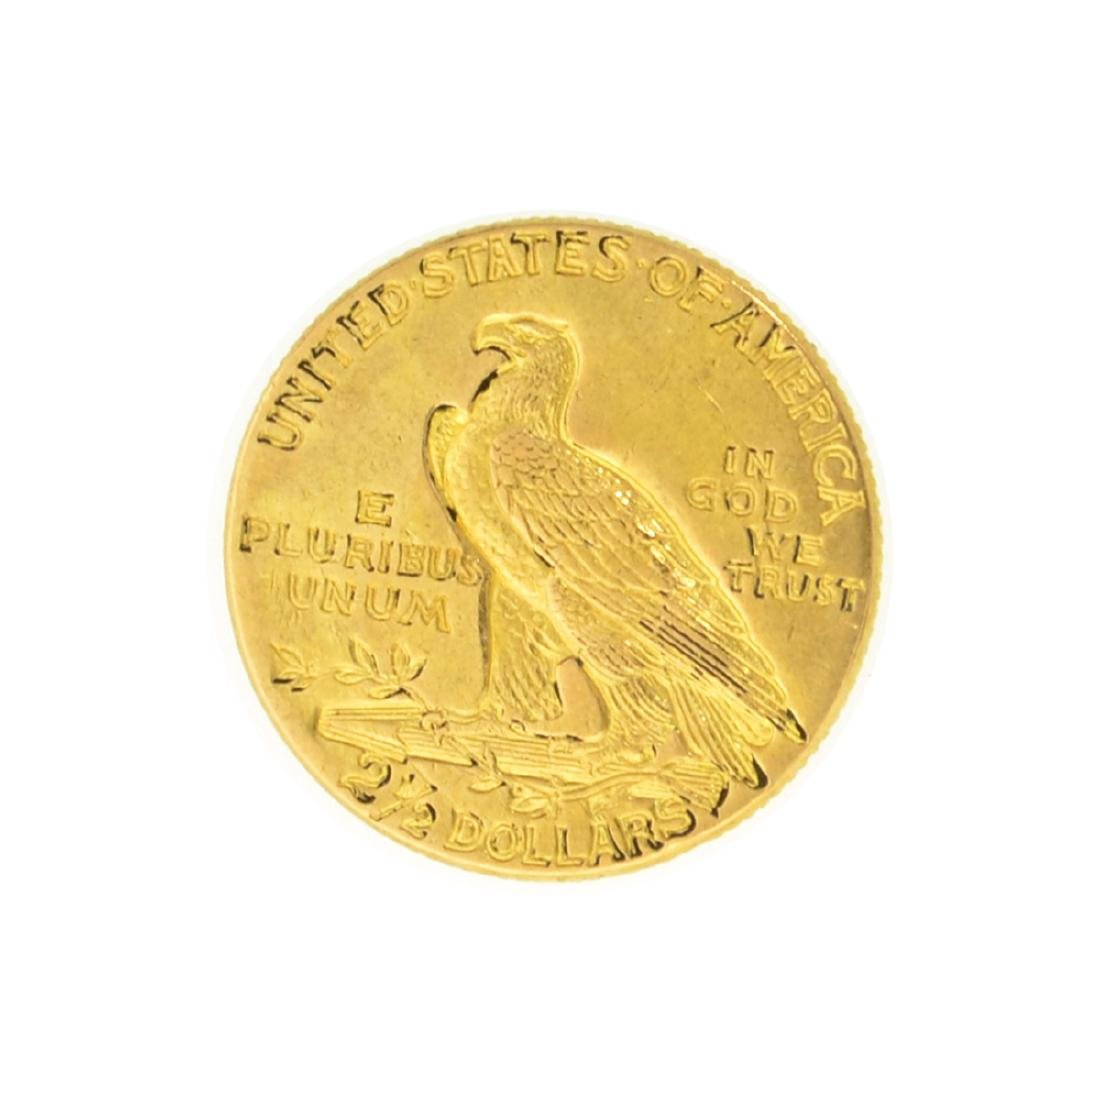 1913 $2.50 U.S. Indian Head Gold Coin - Great - 2